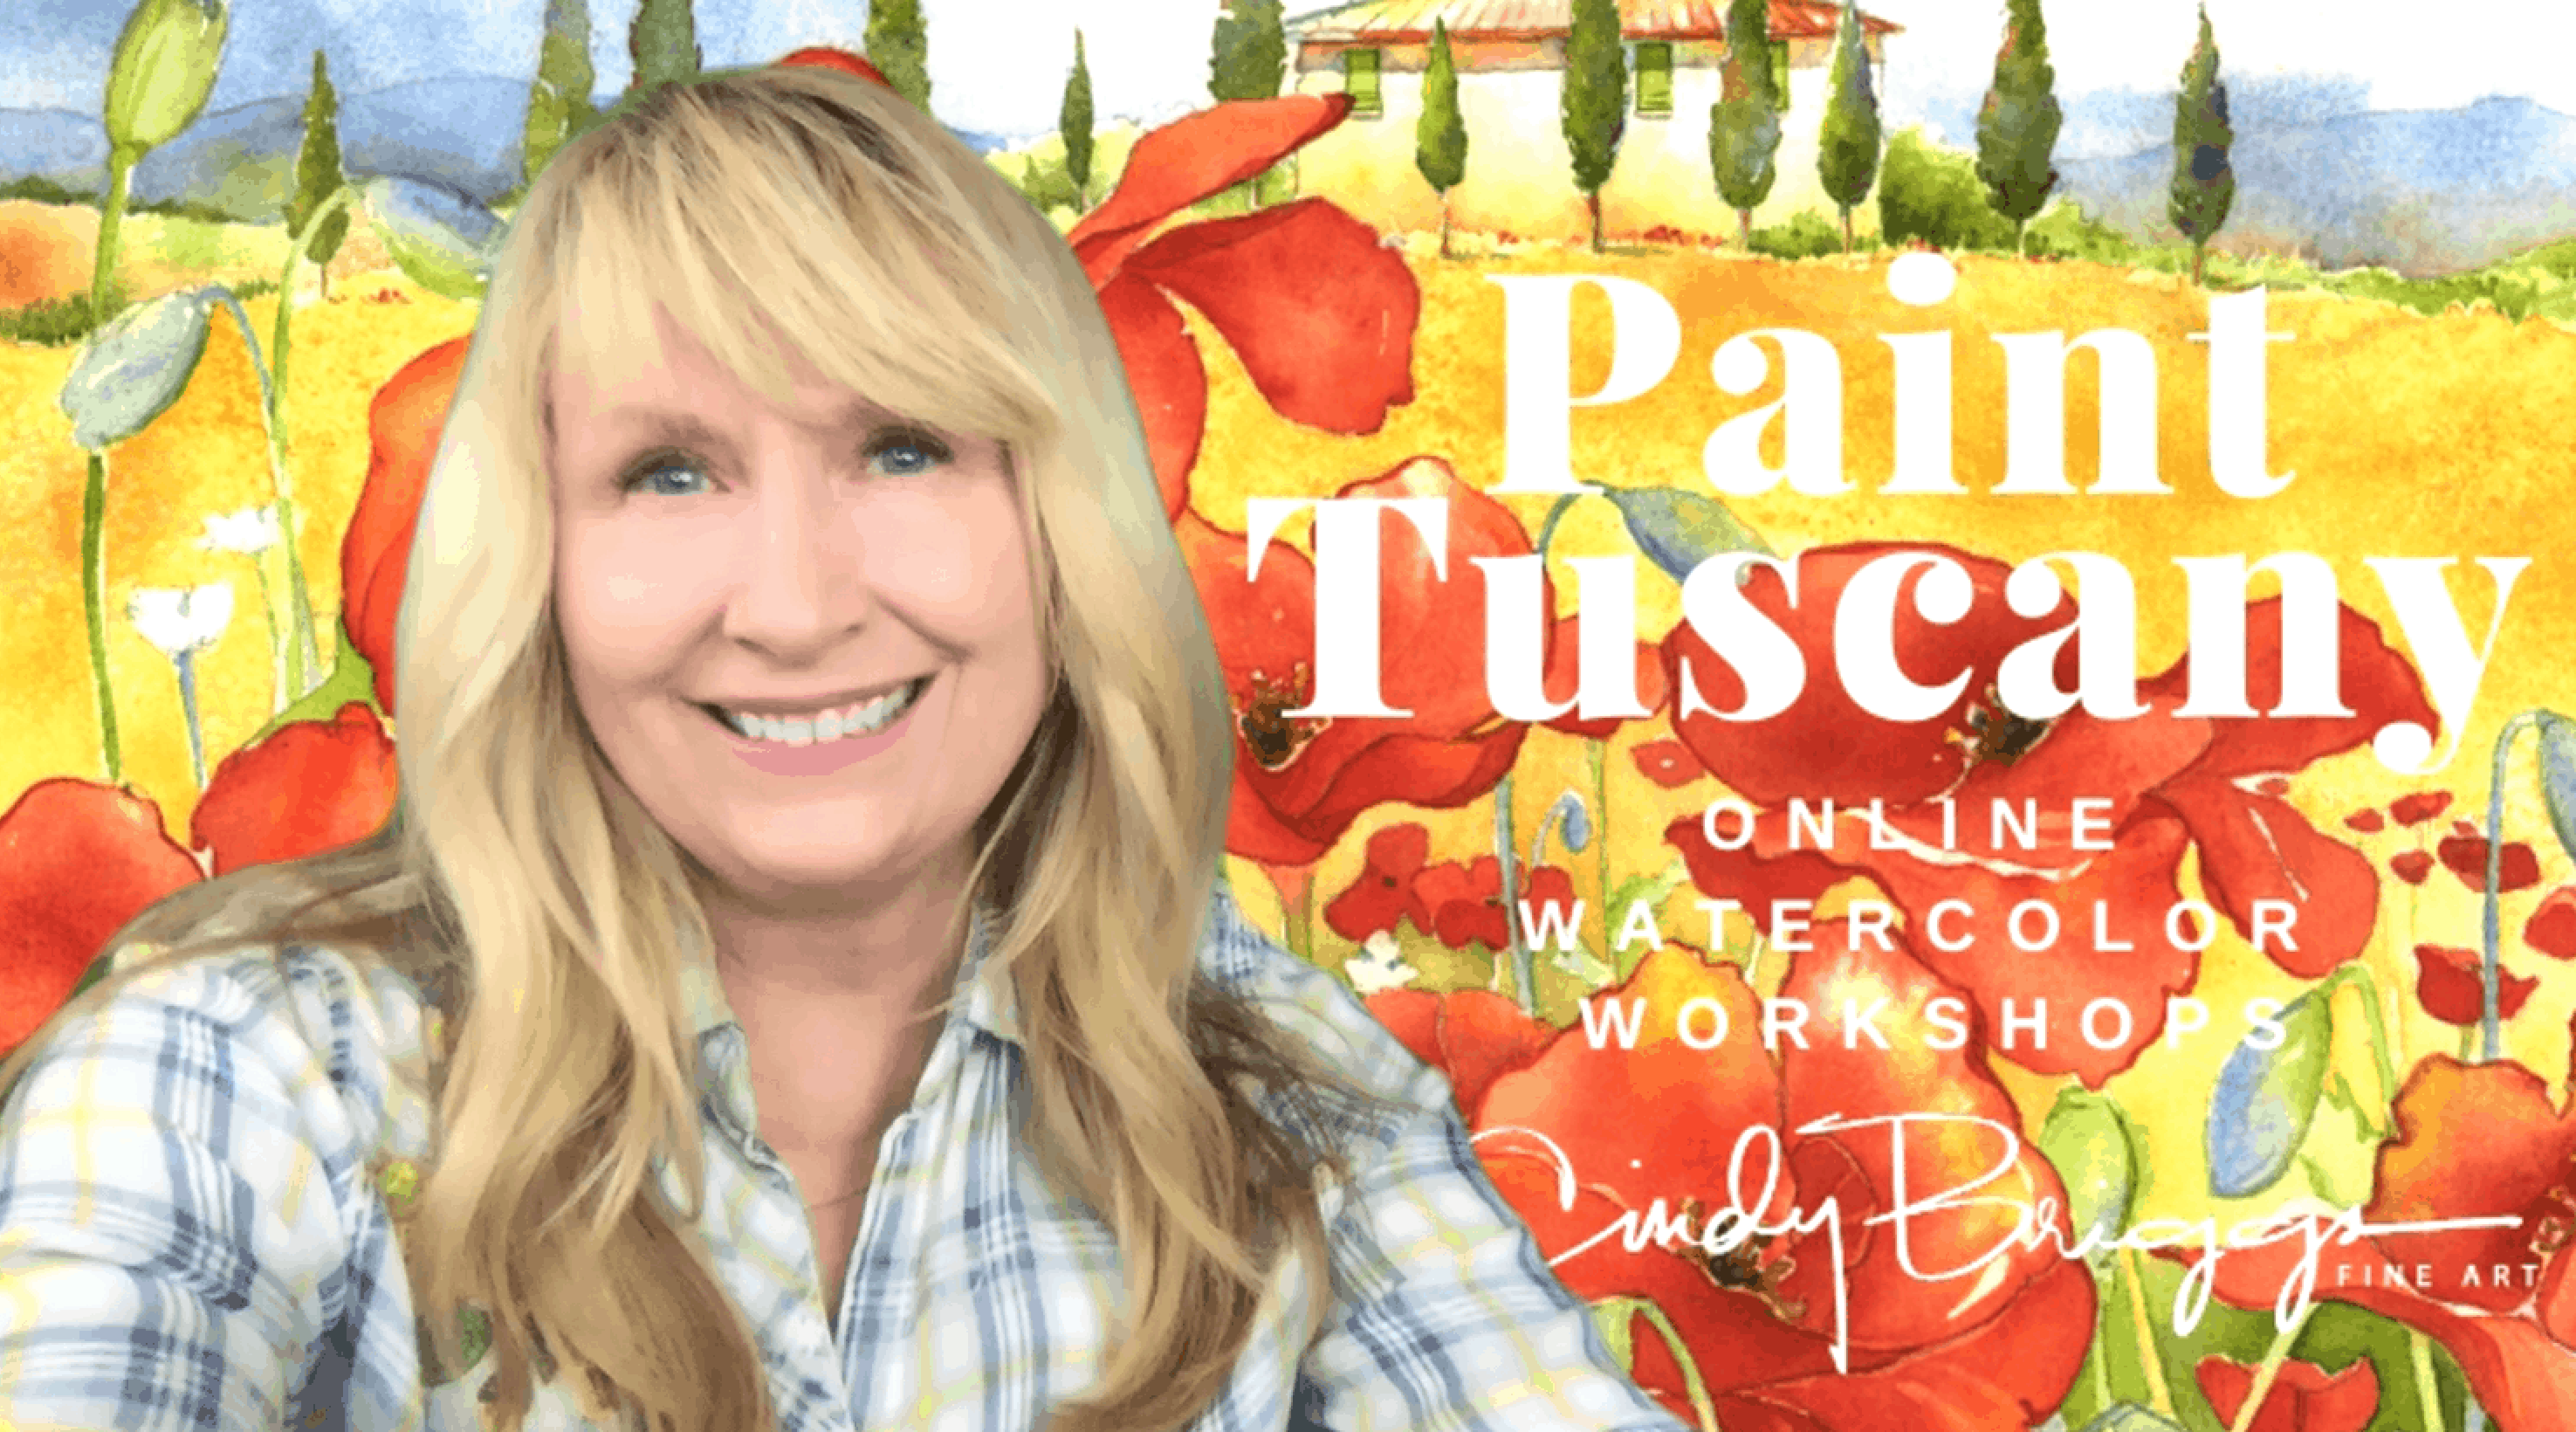 Paint Tuscany with Watercolors | Cindy Briggs Workshops